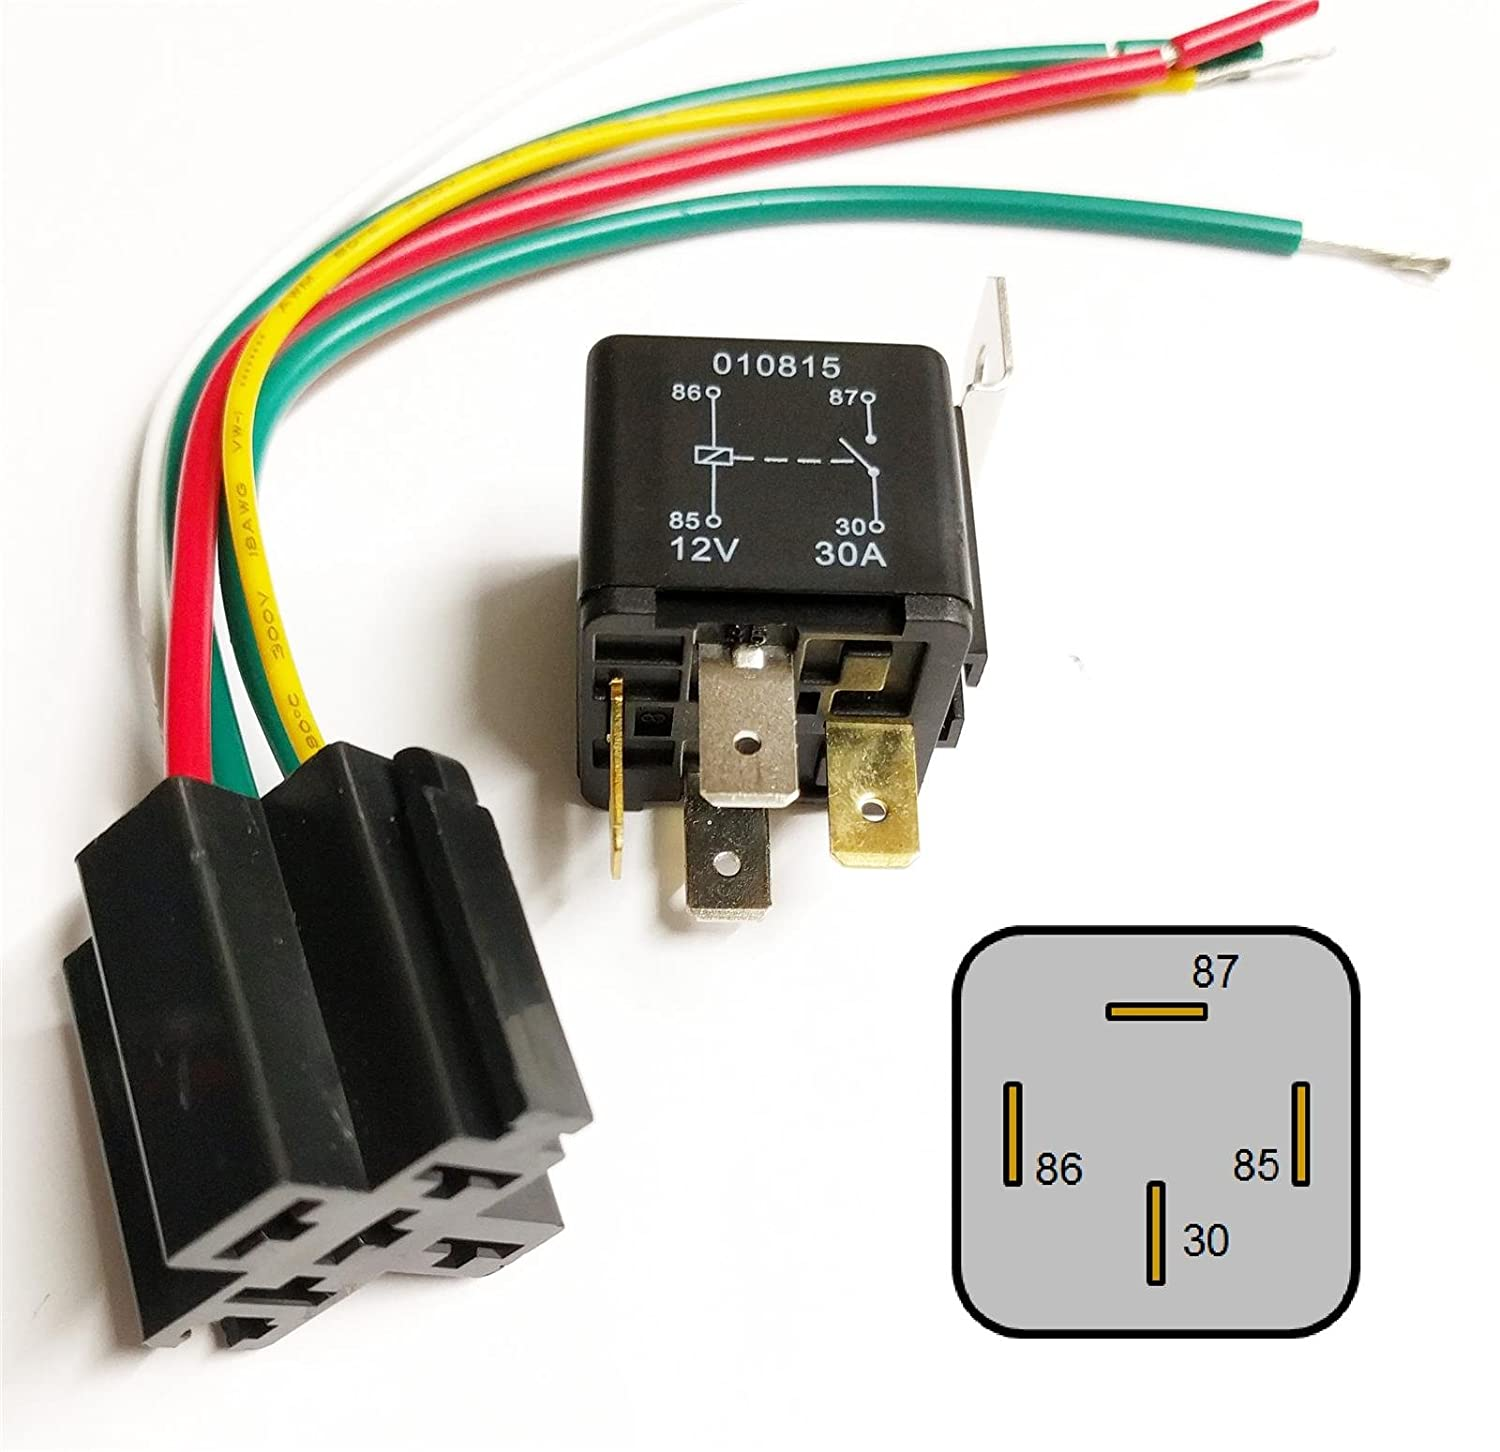 Amazon.com: 4 Pin 12V 30A Relay with Prewired Base for ... on